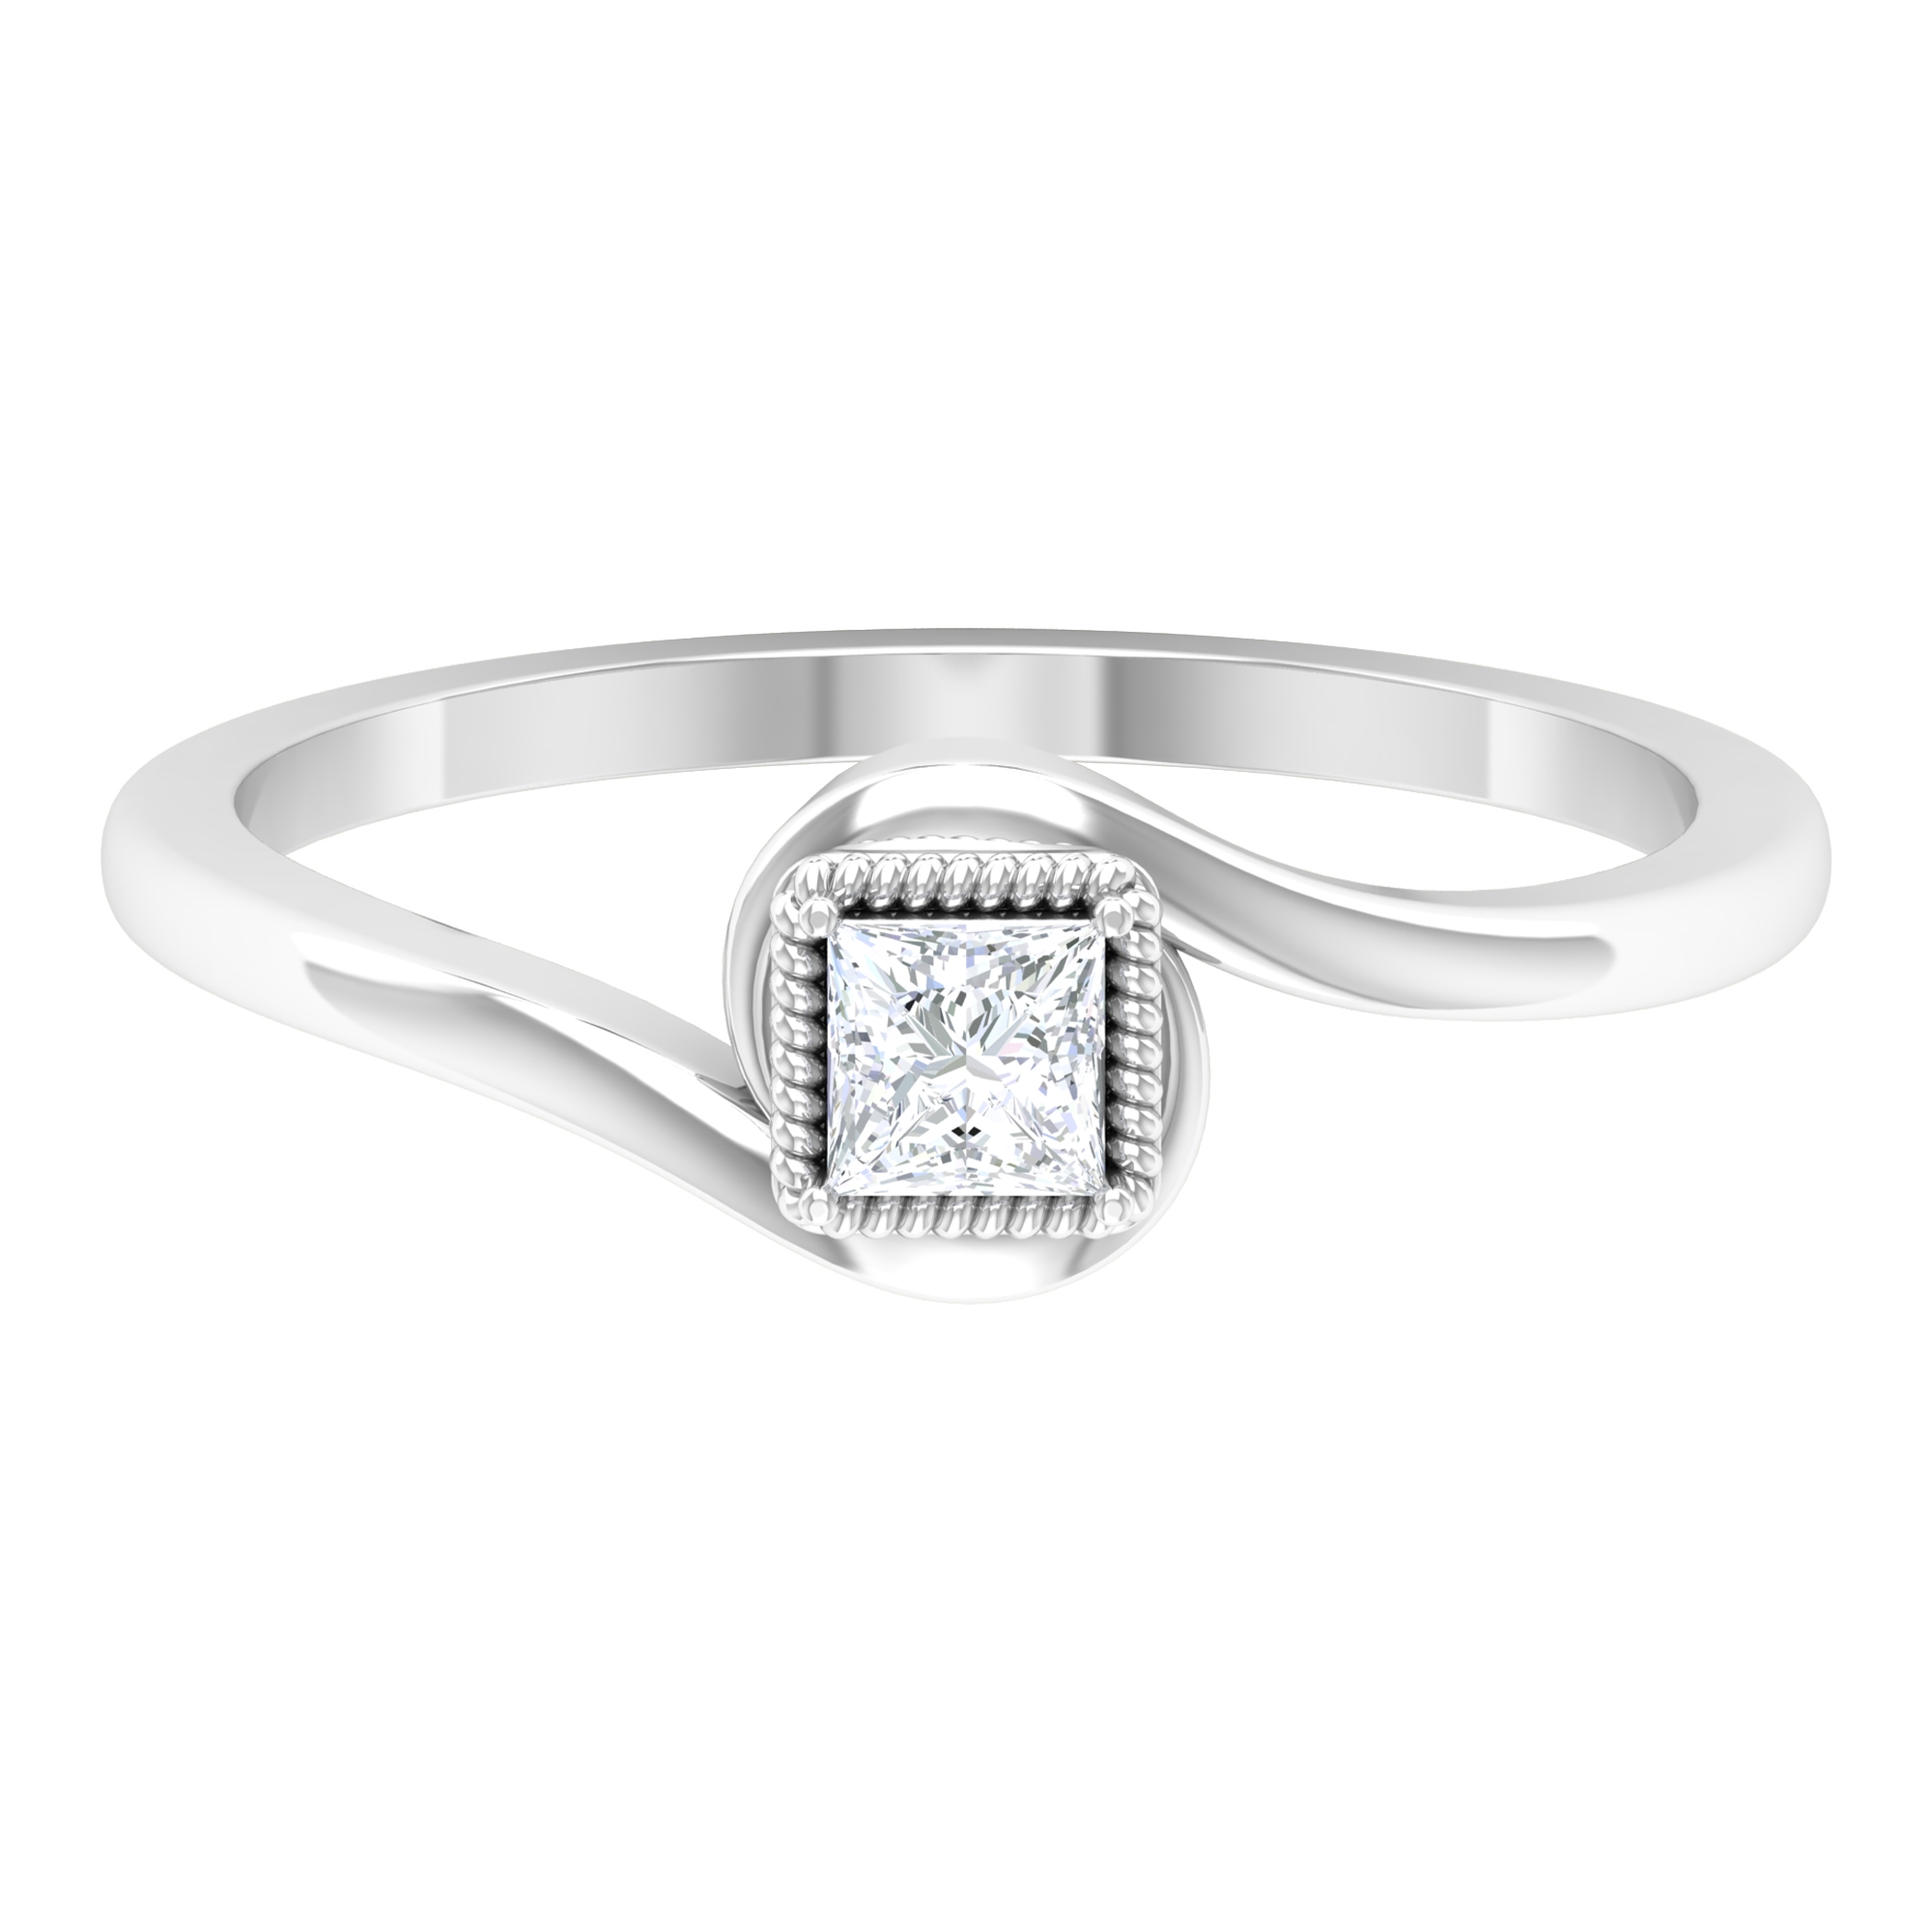 1/4 CT Princess Cut Diamond Solitaire Ring in Bypass Shank with Rope Frame